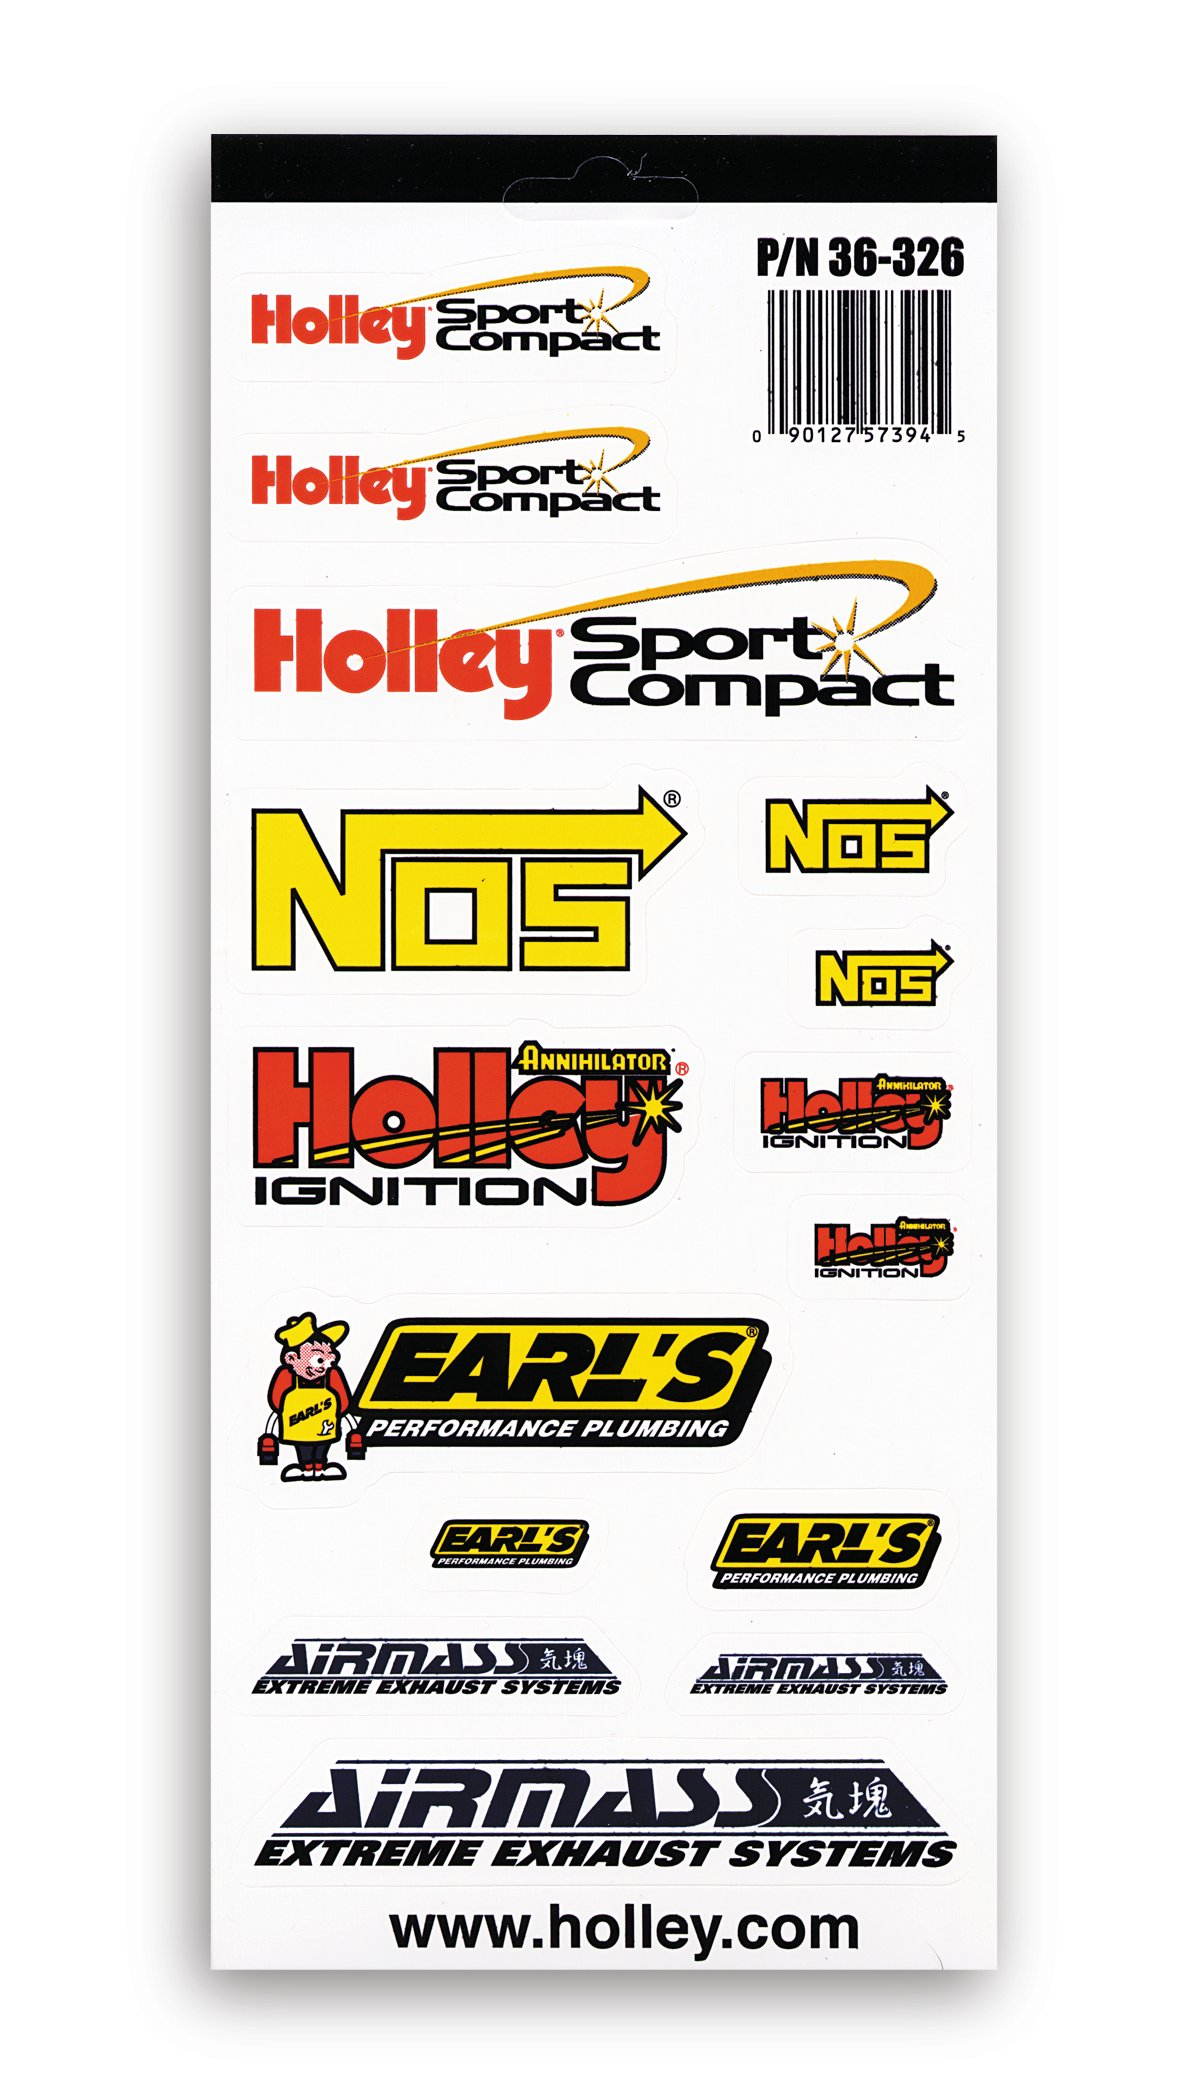 Holley Sport Compact Decals-PK